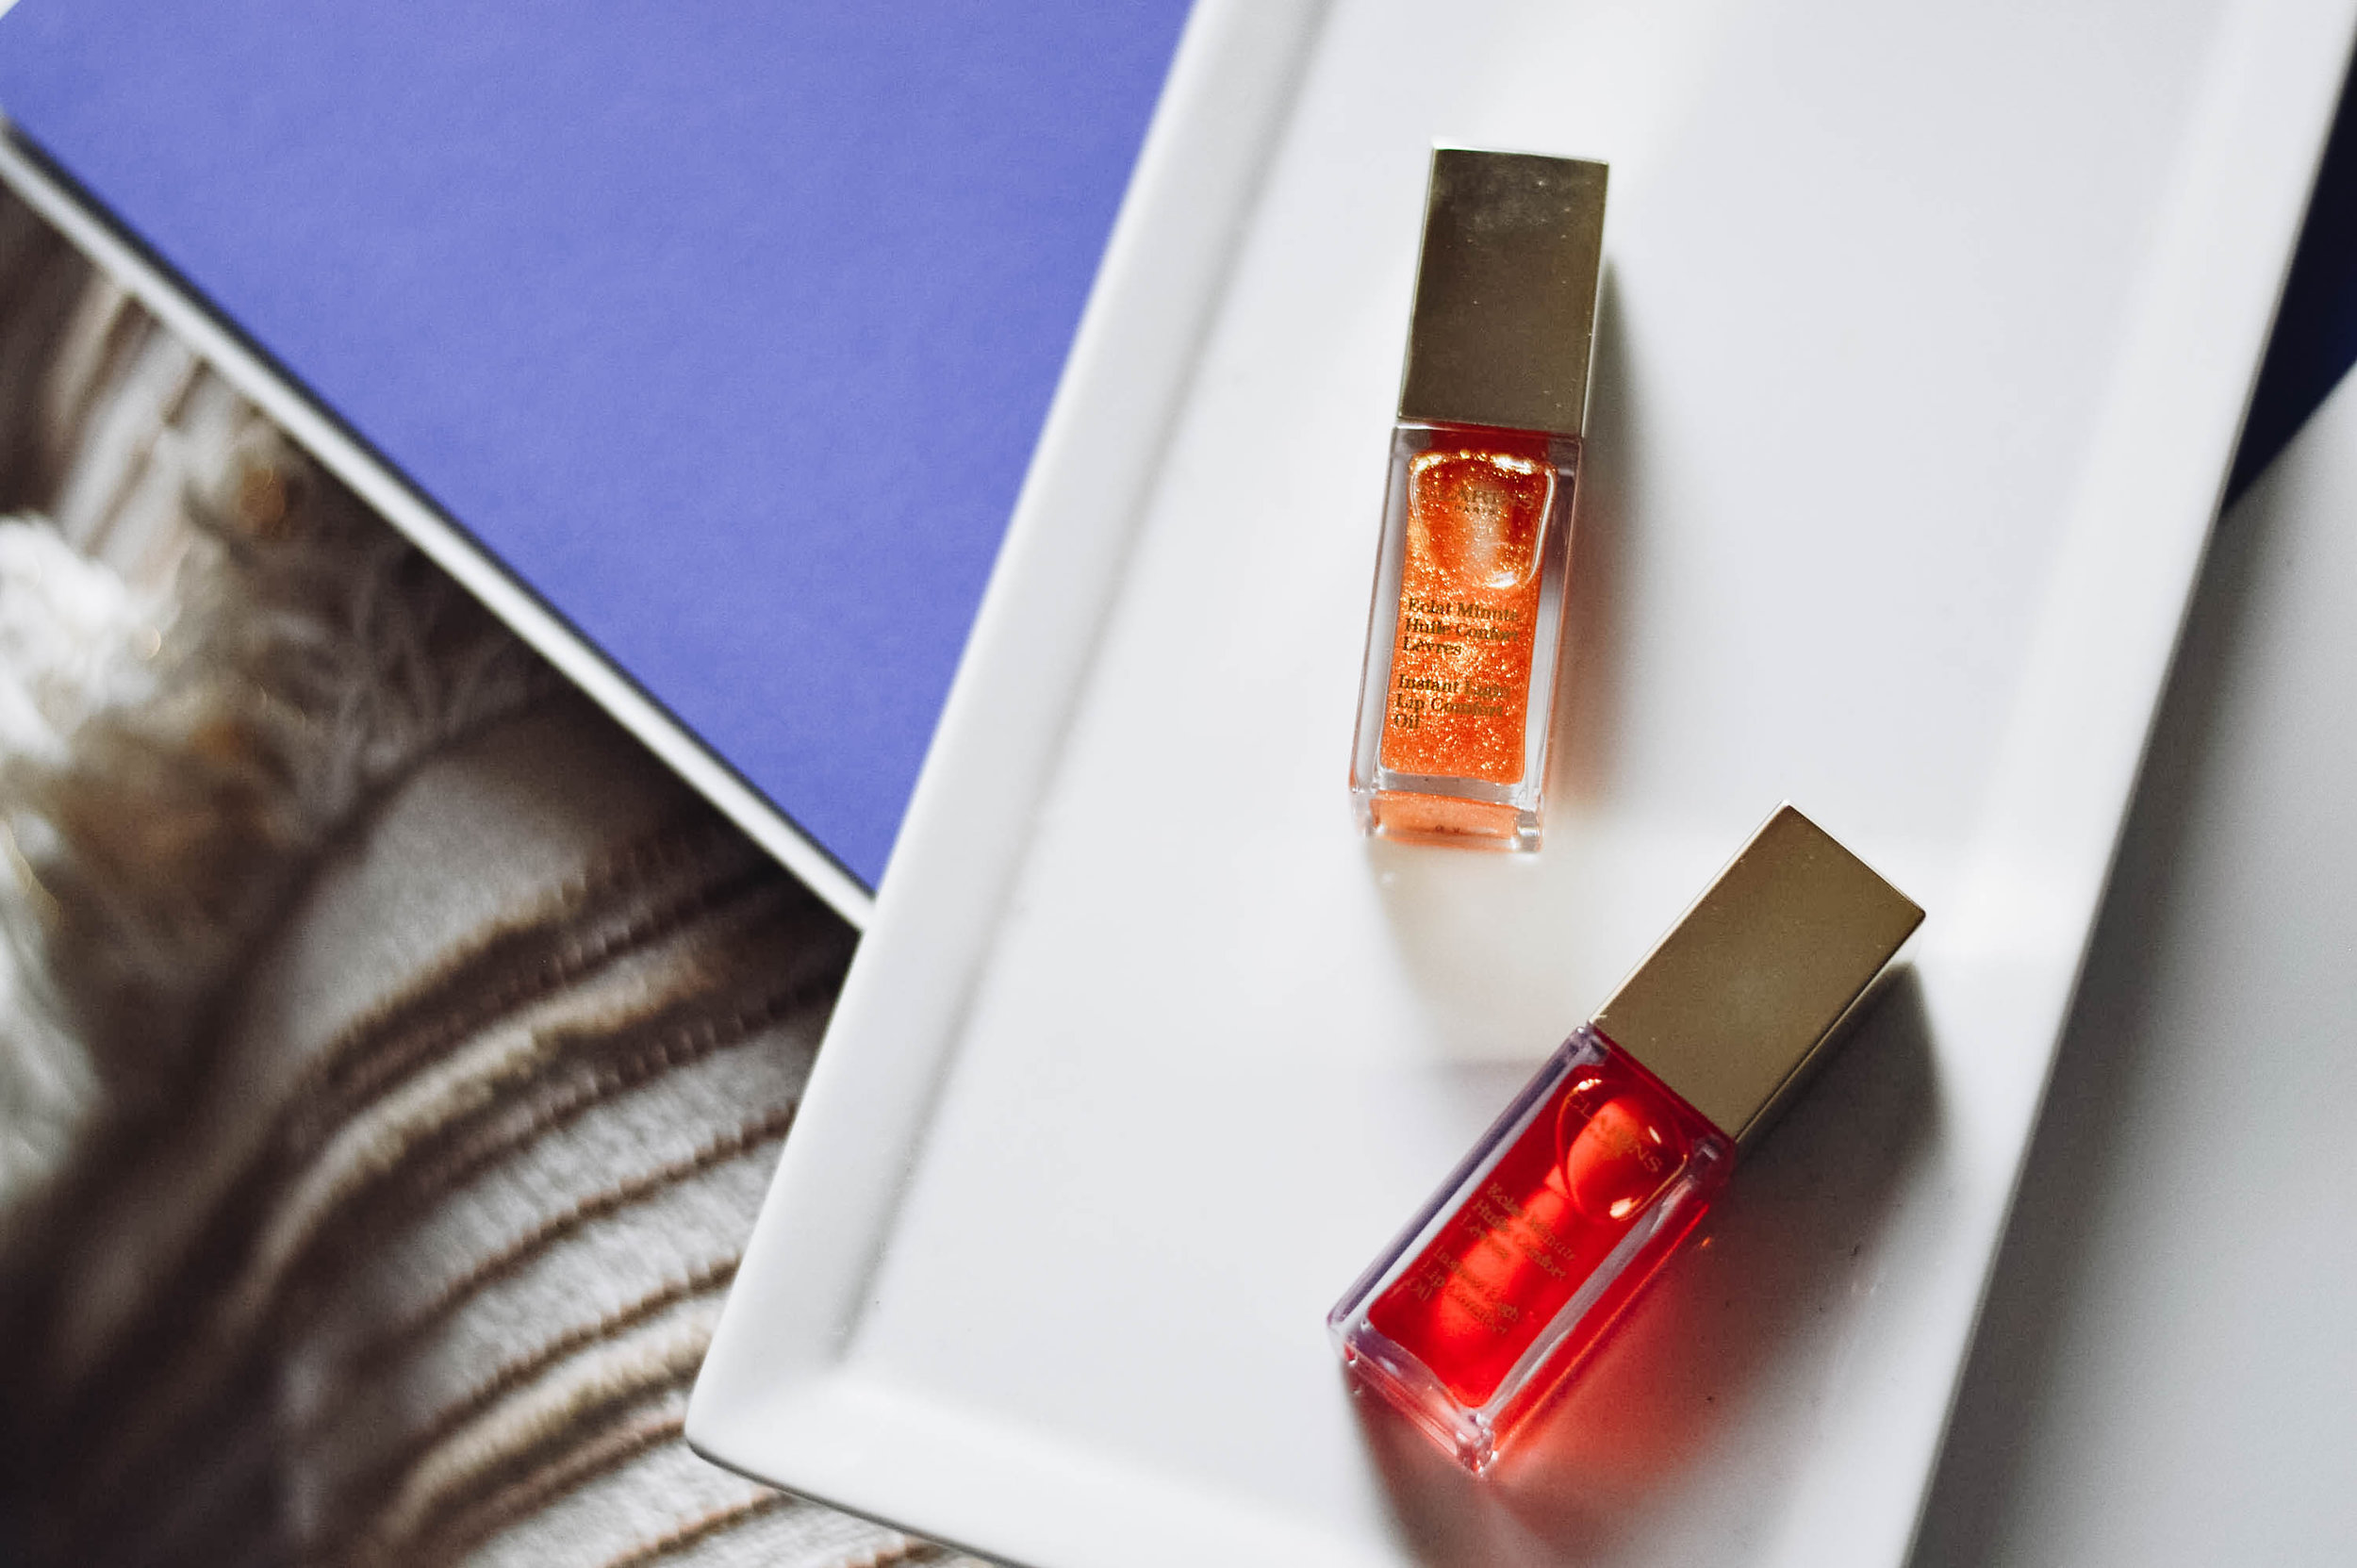 Late Spring Beauty, featuring Clarins Lip Oil via. www.birdieshoots.com